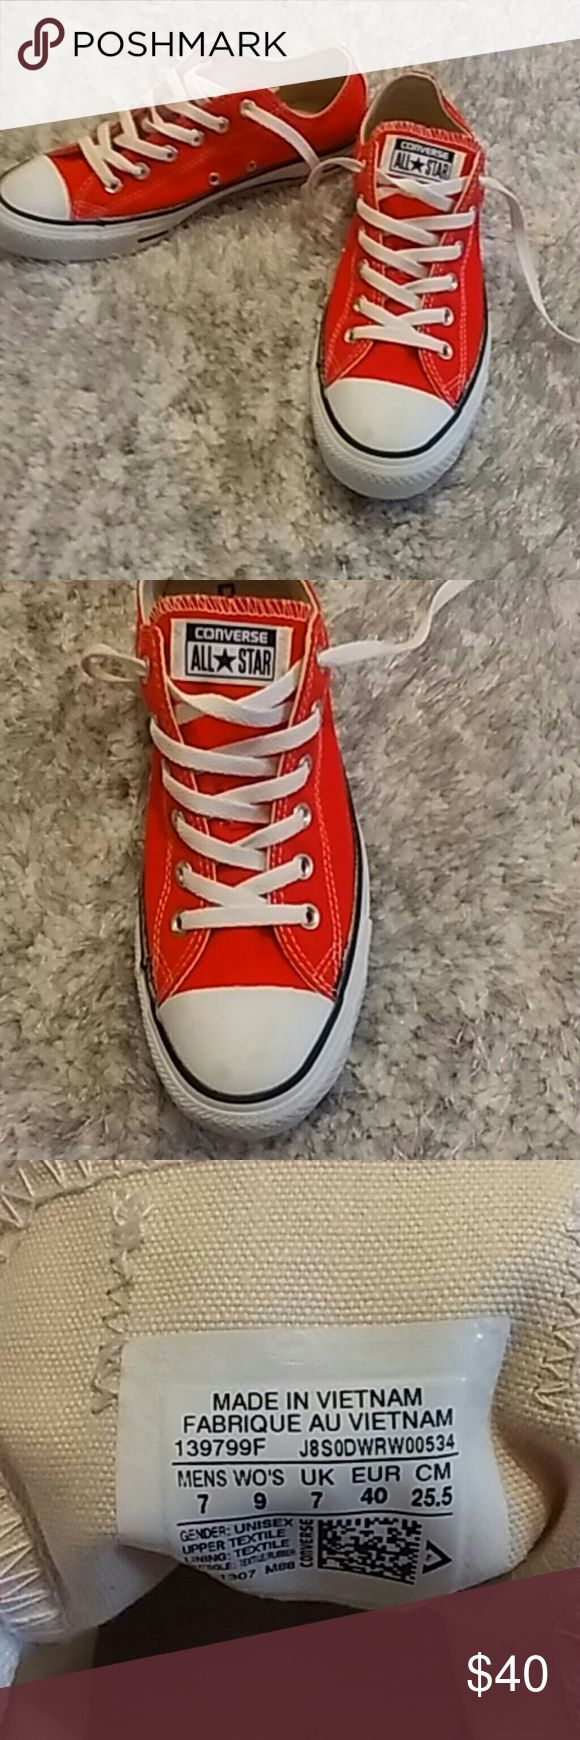 Converse Shoes! Neon orange shoes. Worn once around the house to big. Really pretty color! Converse Shoes